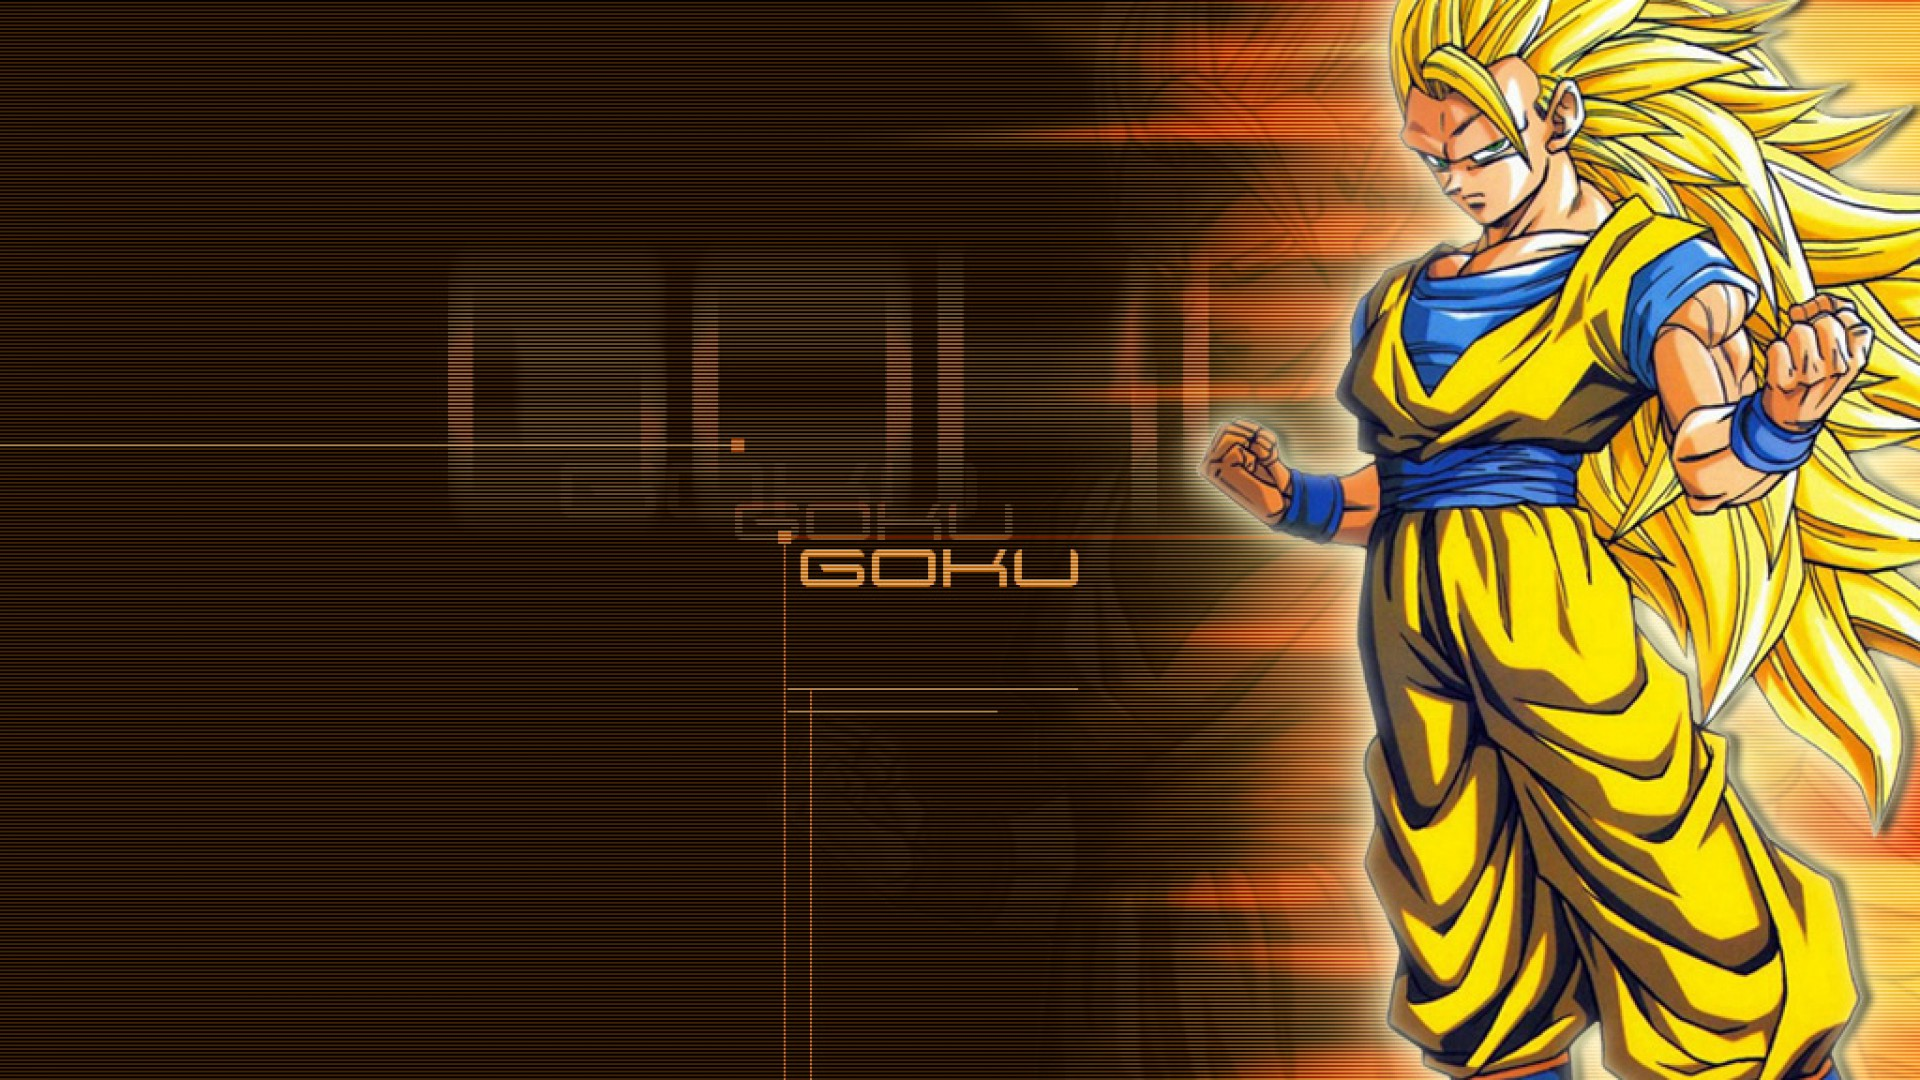 Goku Wallpaper Hd For Pc 6 Cartoon District